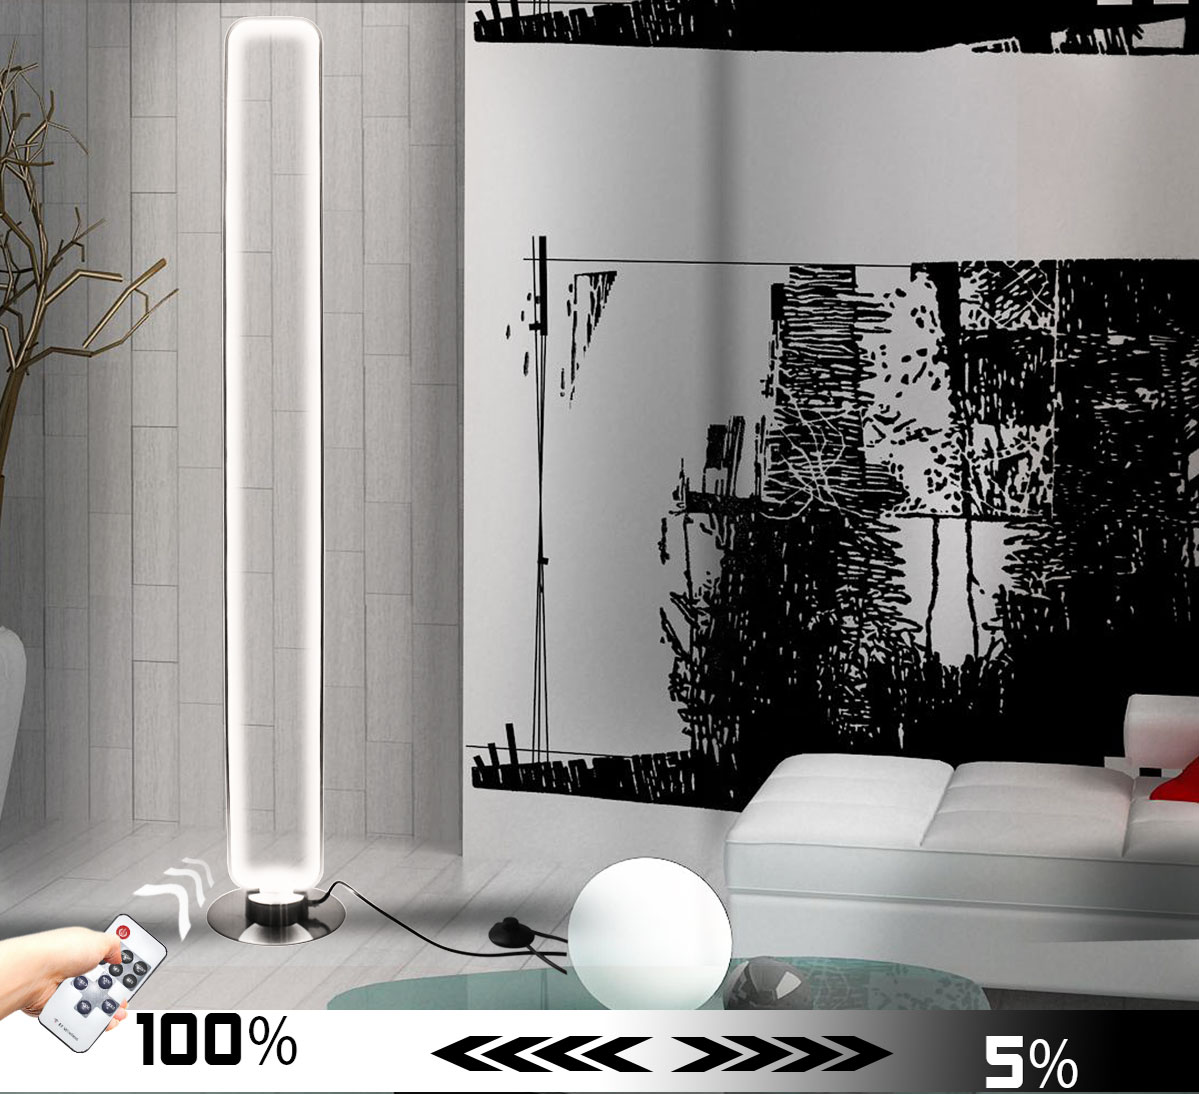 Full Size of Kristall Stehlampe Ha111 Diffus Led Stehleuchte Boden Lampe 140cm 50w Schlafzimmer Wohnzimmer Stehlampen Wohnzimmer Kristall Stehlampe